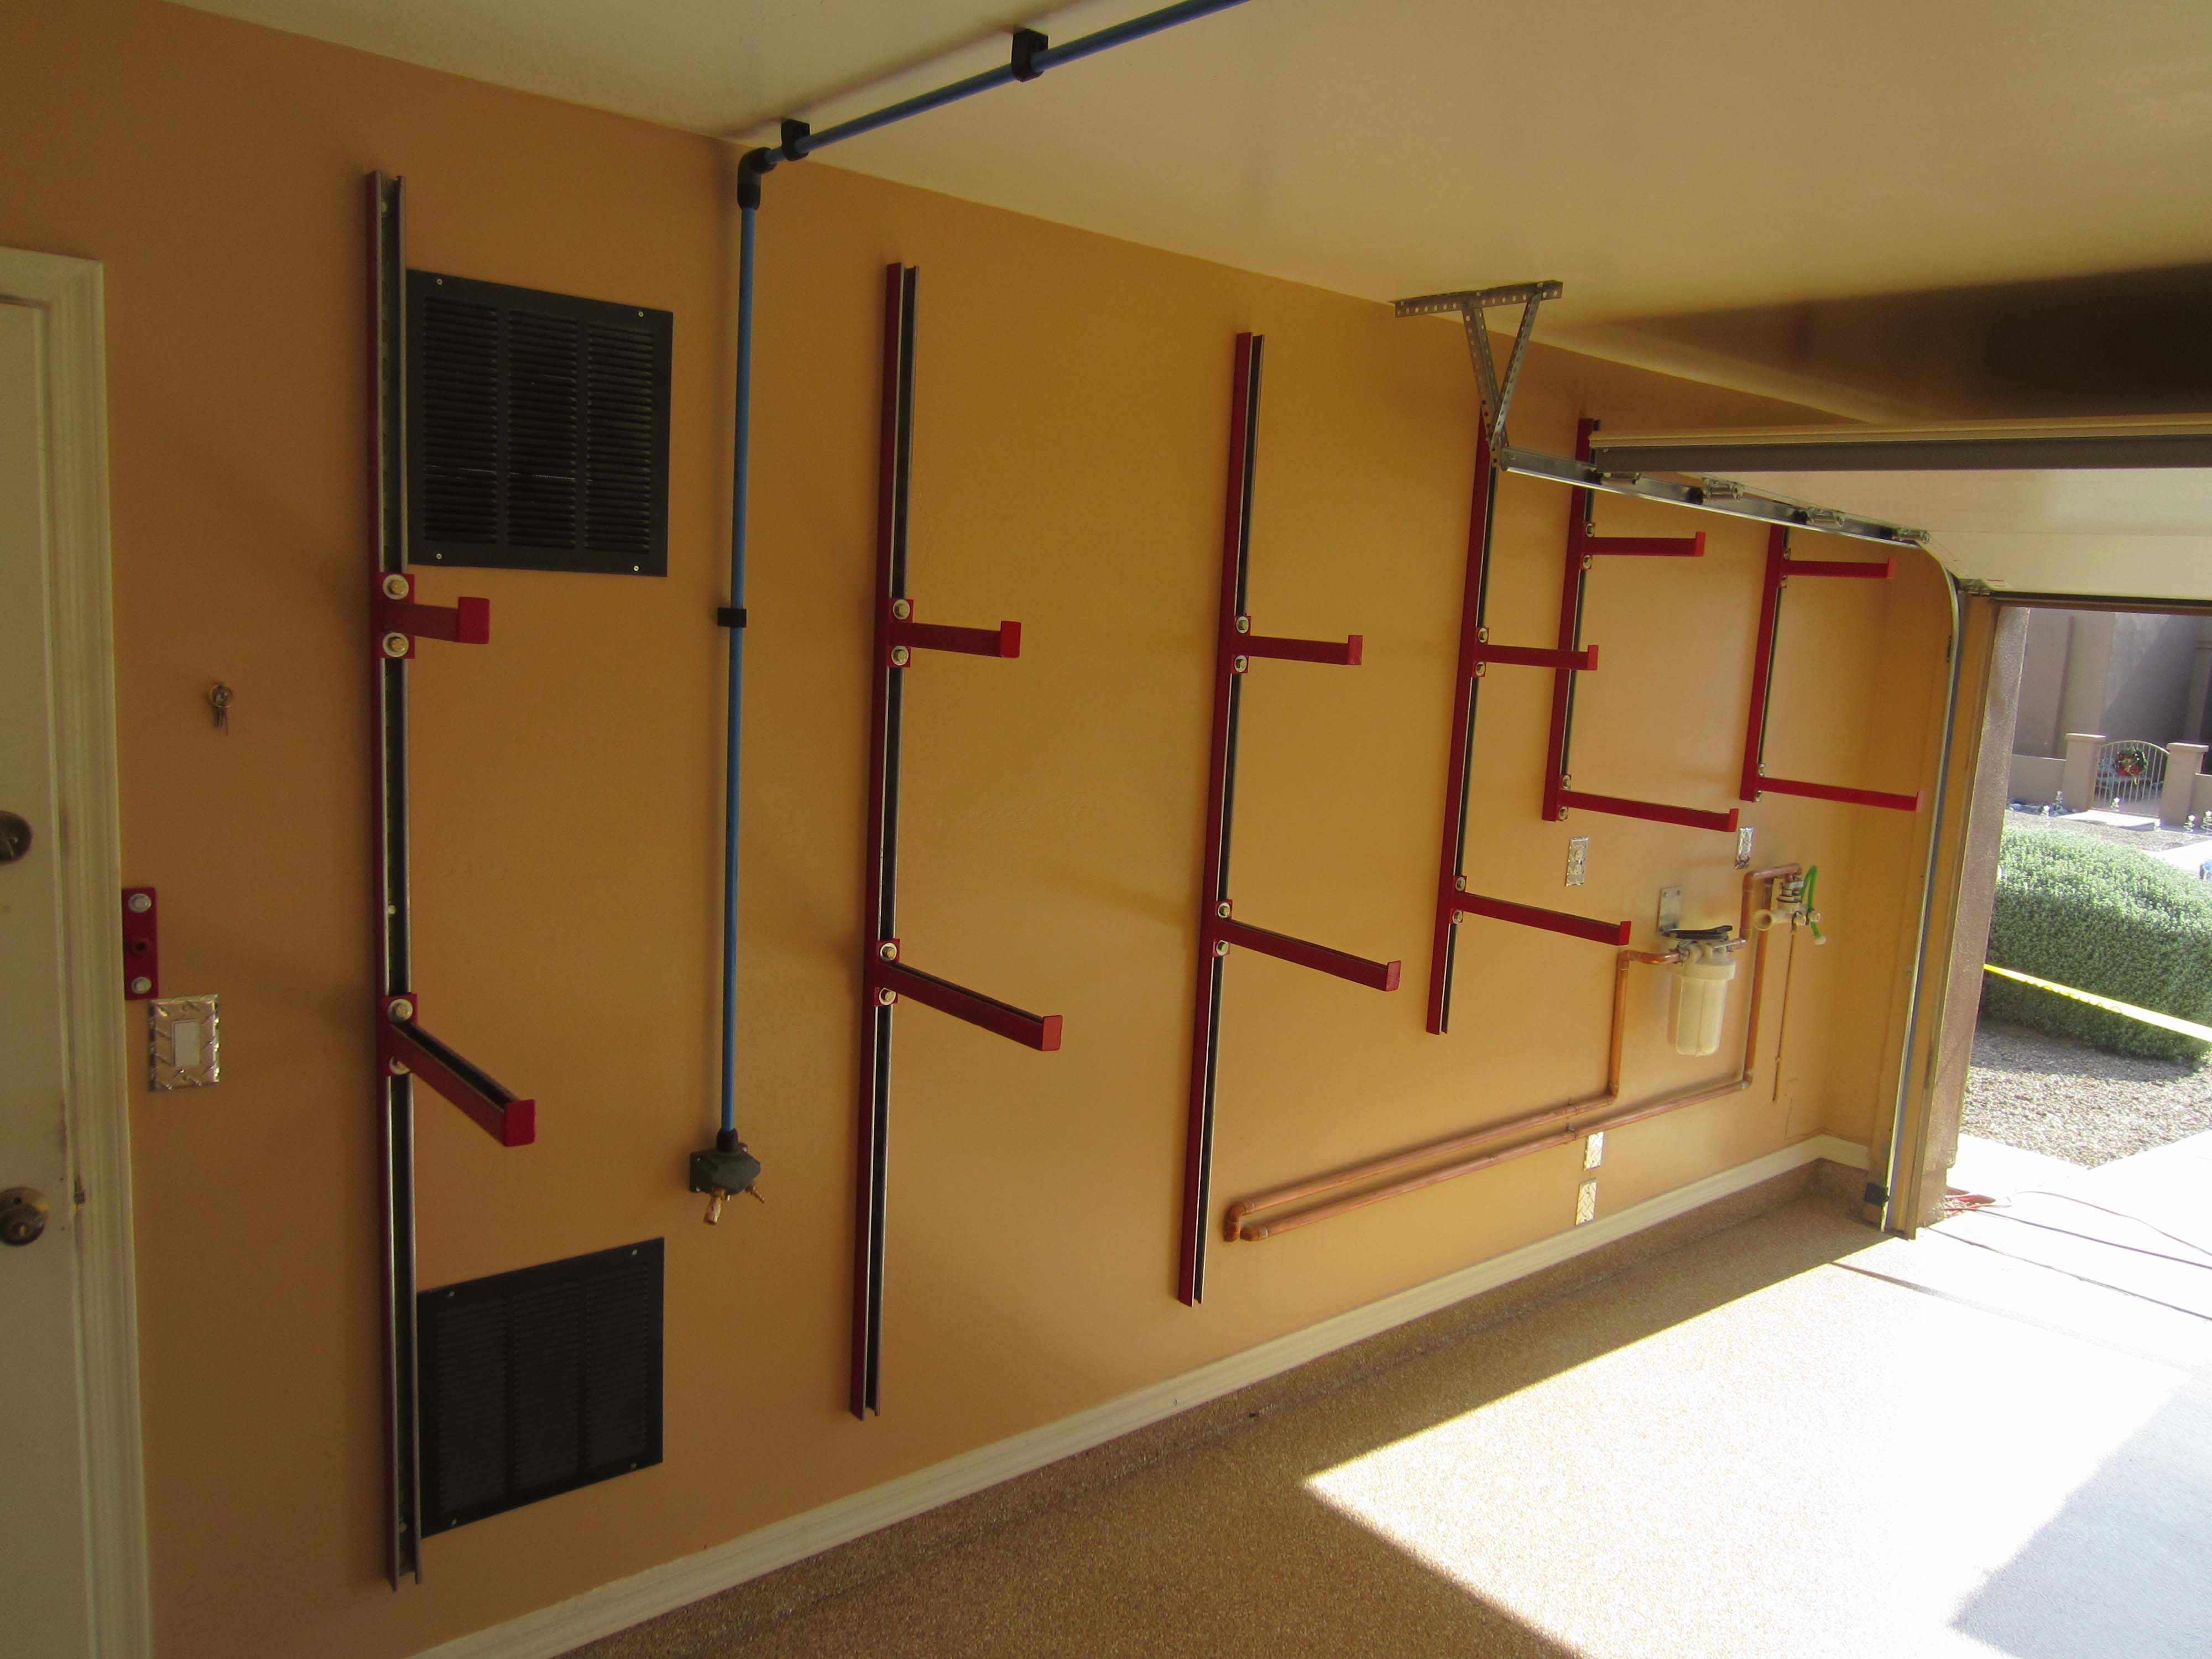 Attractive Metal Storage Ideas? Show Me Some Pics!   The Garage Journal Board